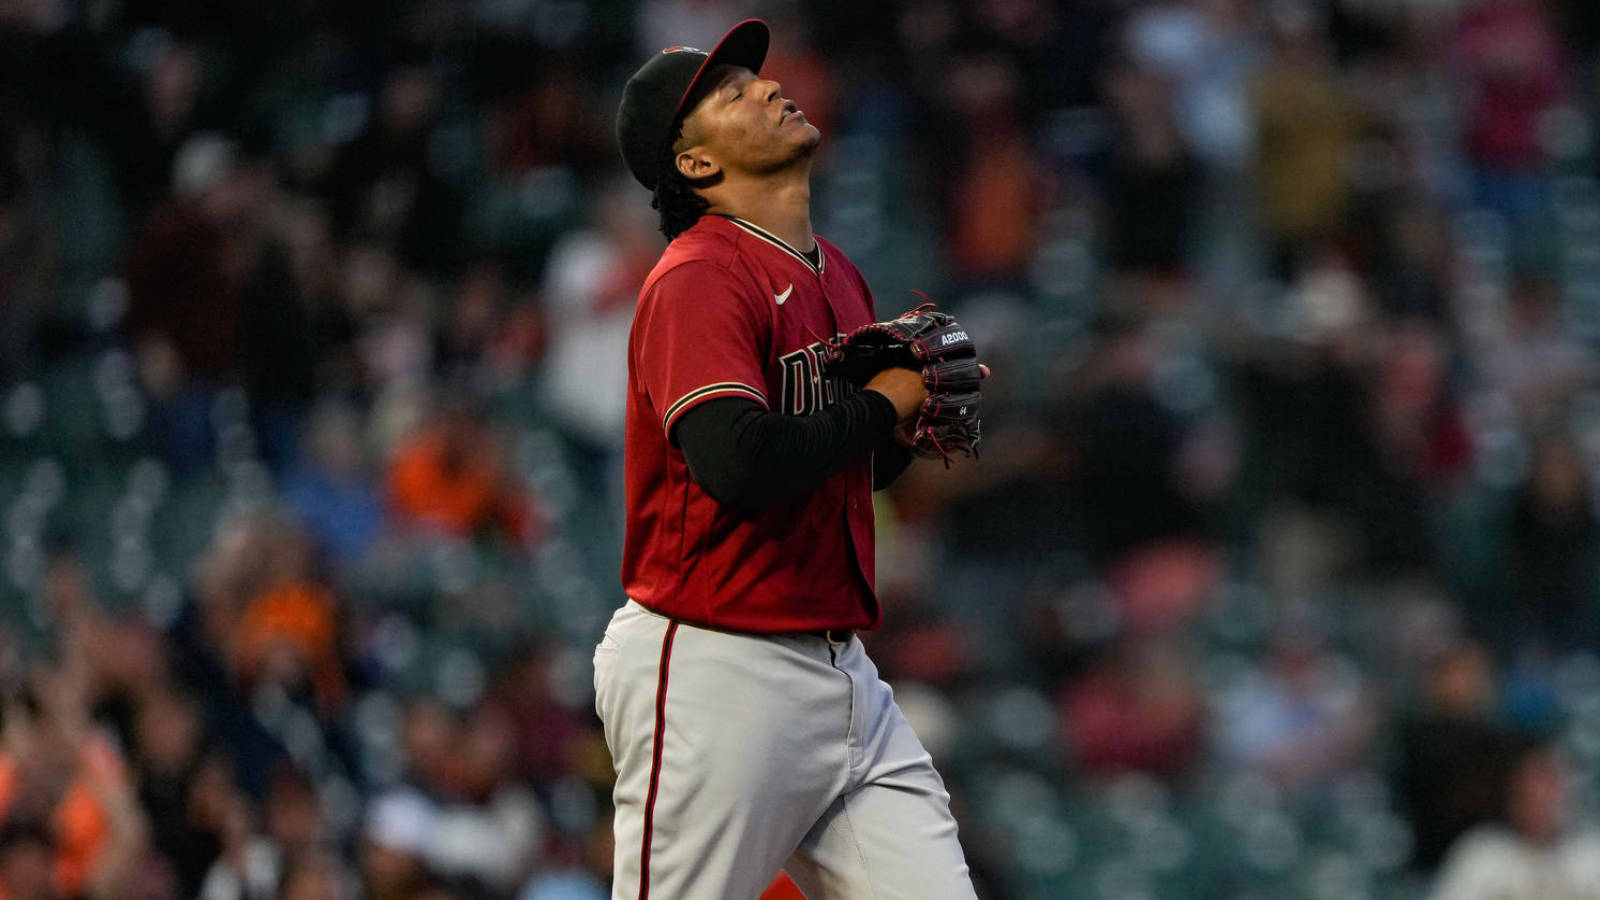 D-backs tie all-time record for consecutive road losses